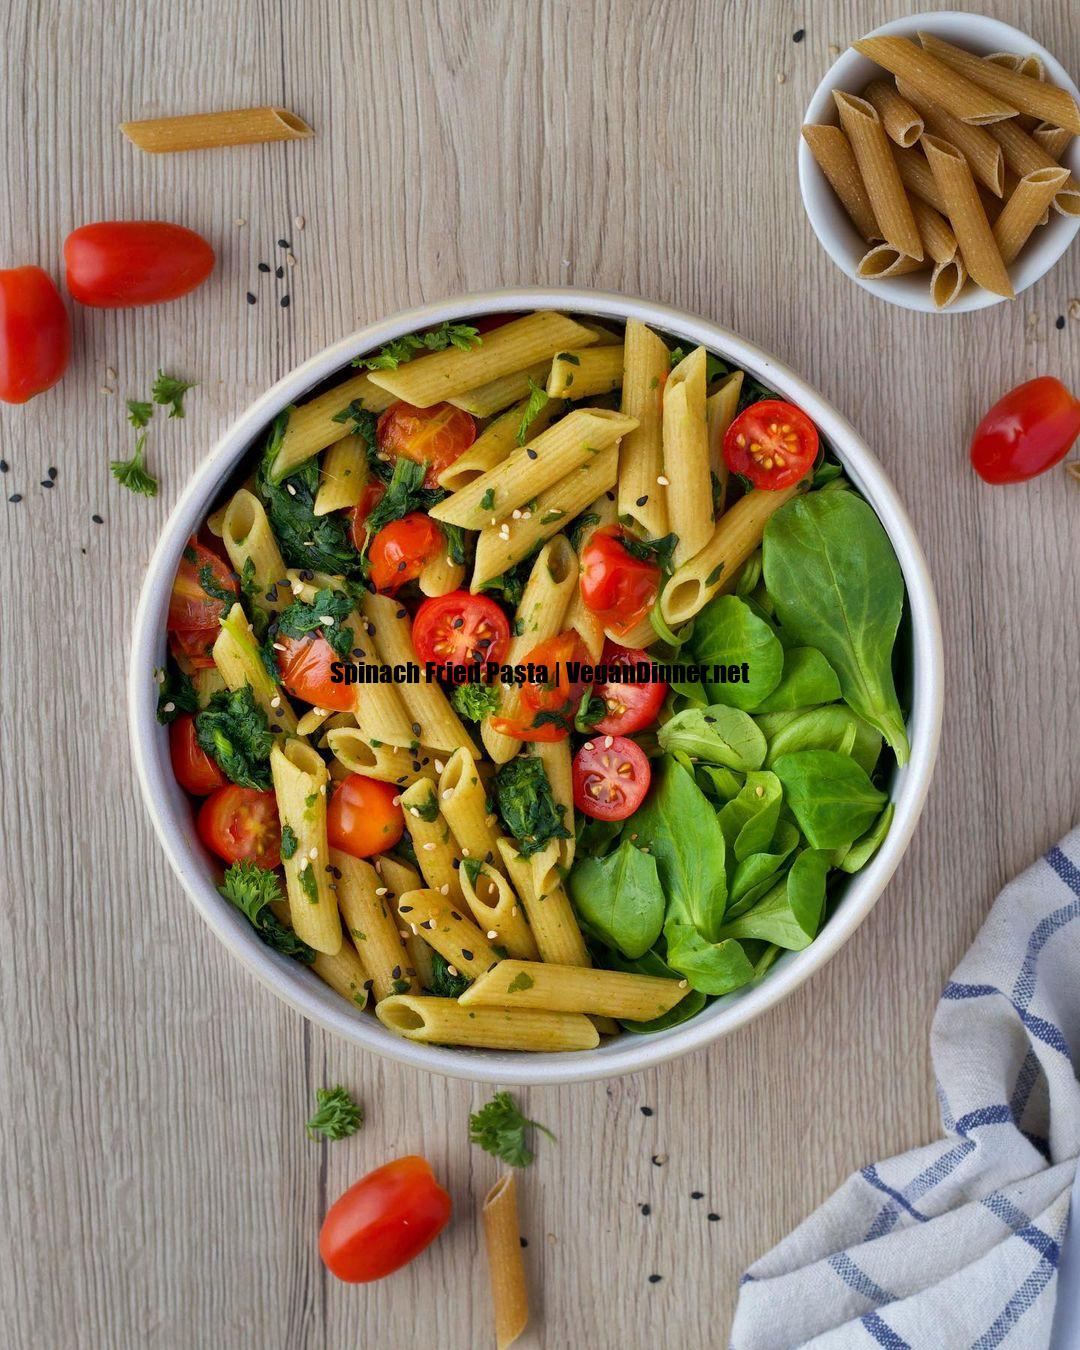 spinach fried pasta display image bcd